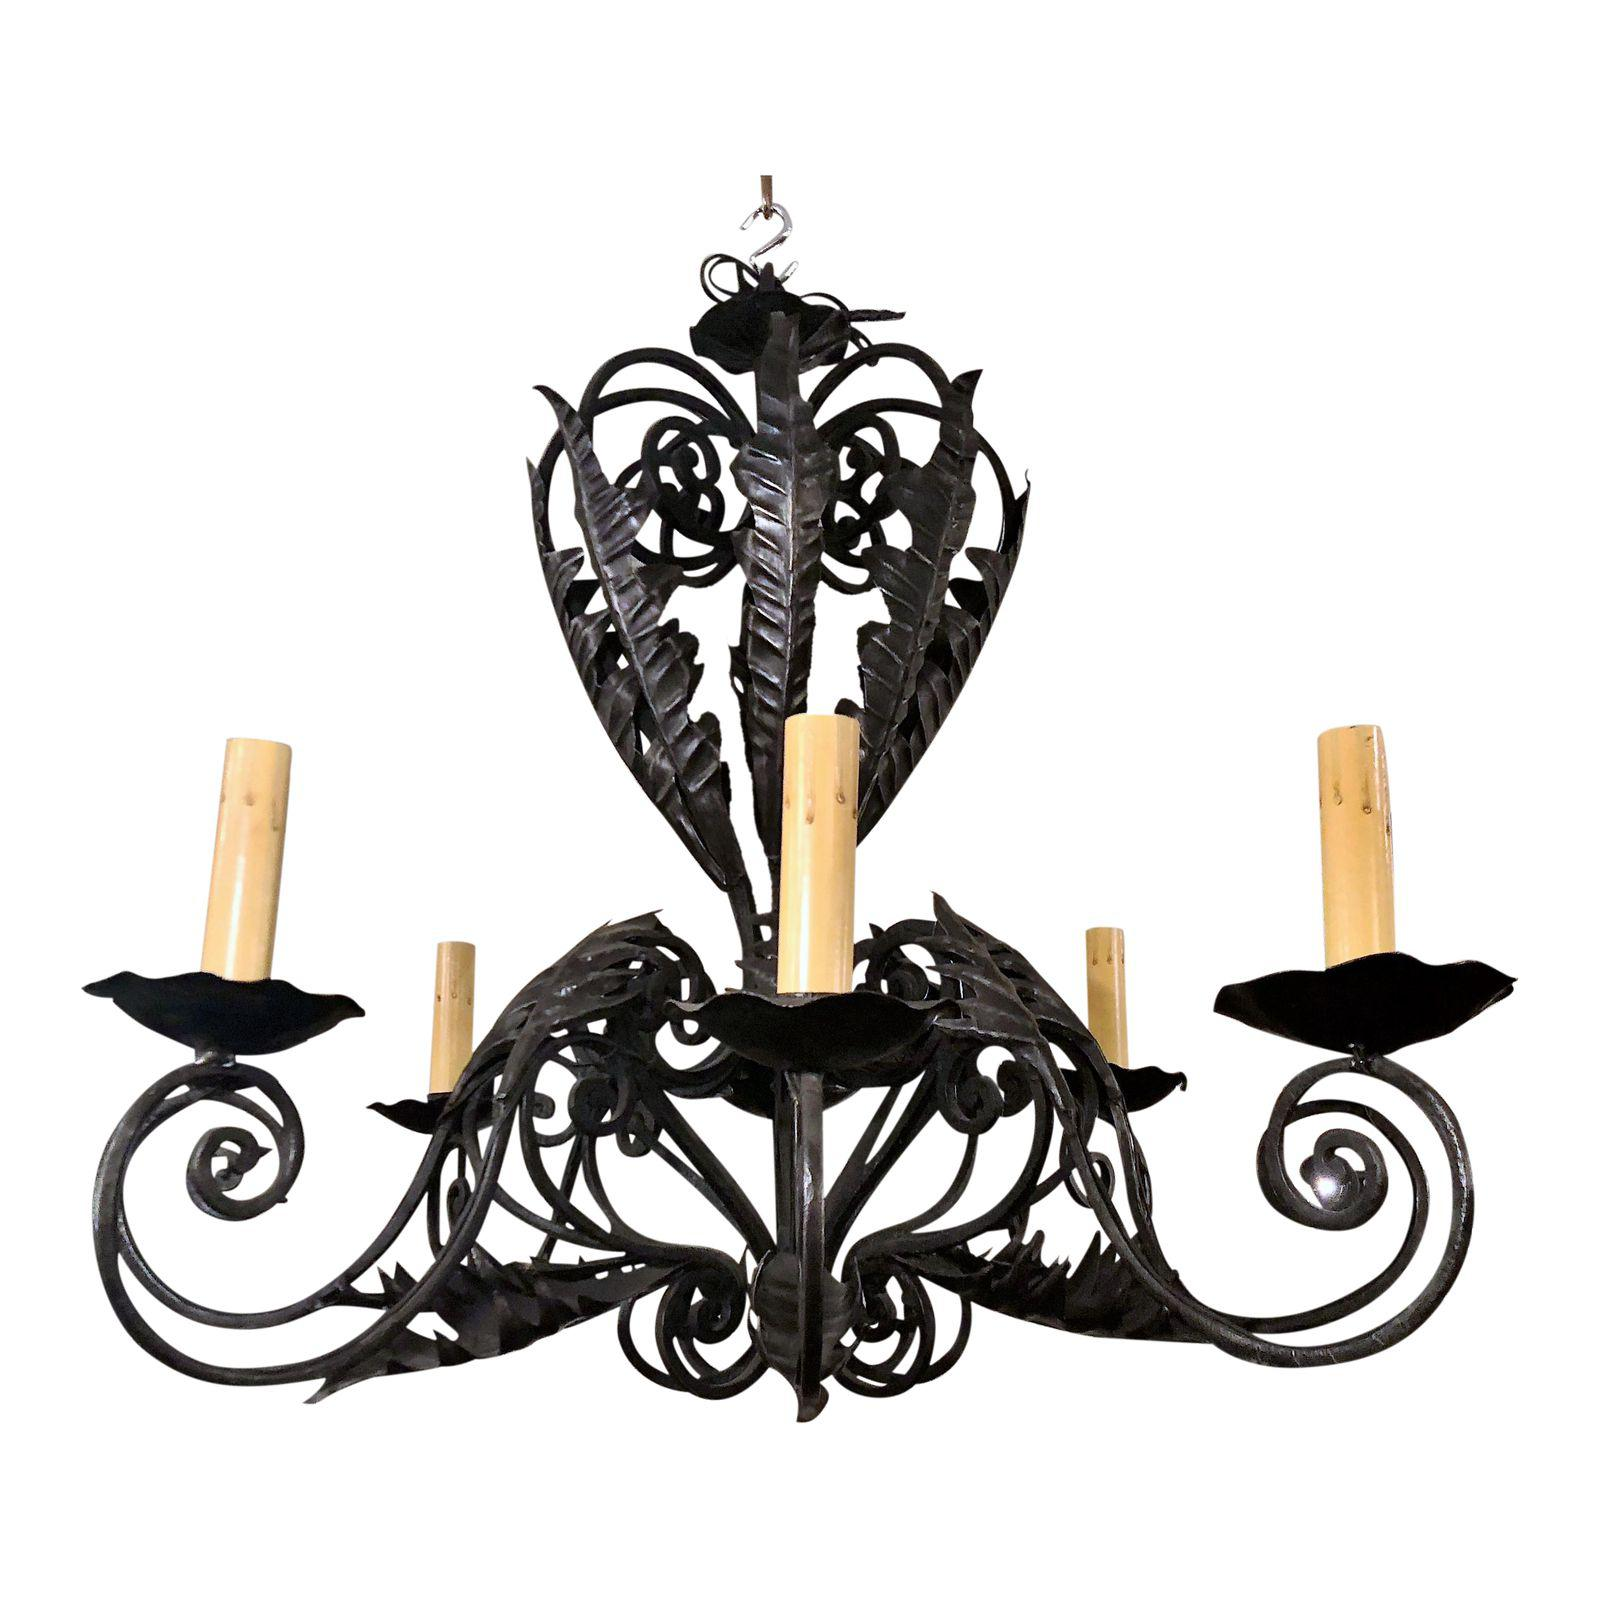 Antique wrought iron chandelier circa 1910 1920 keils antiques antique wrought iron chandelier circa 1910 1920 aloadofball Images